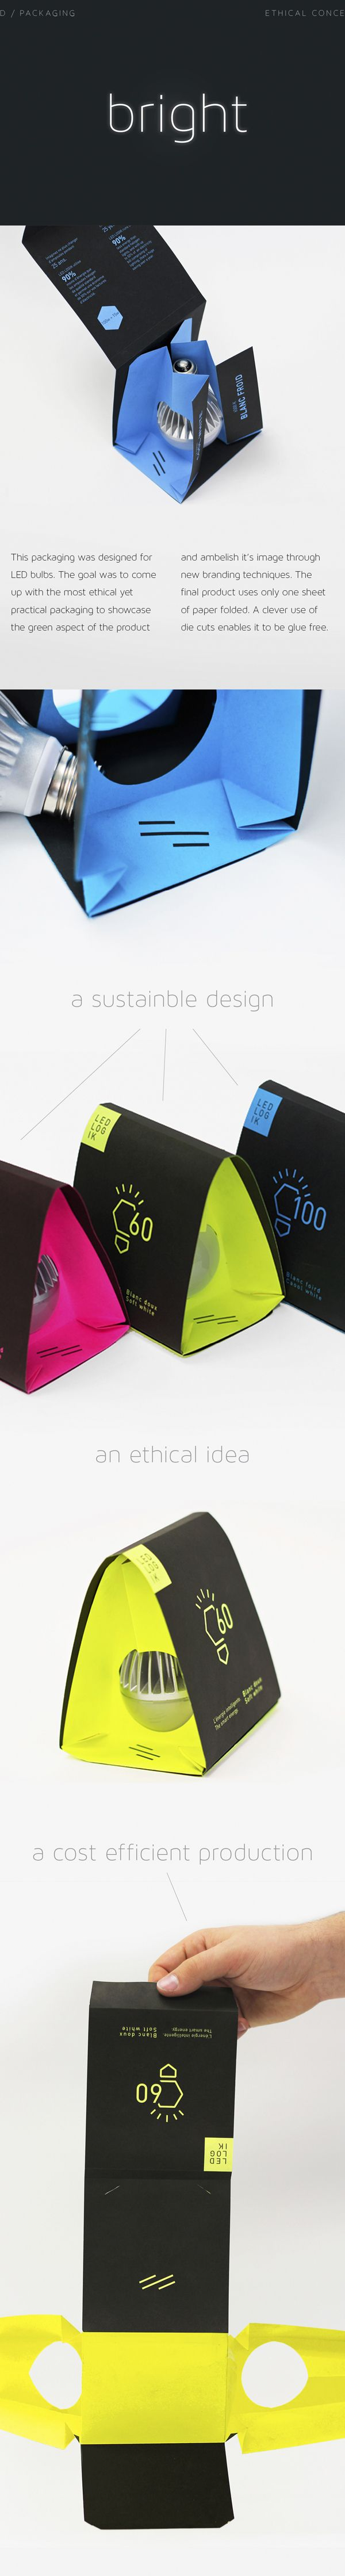 Led Light Bulbs on Behance  Turns into a bird feeder? Not weather proof, but some kind of housing for small critter